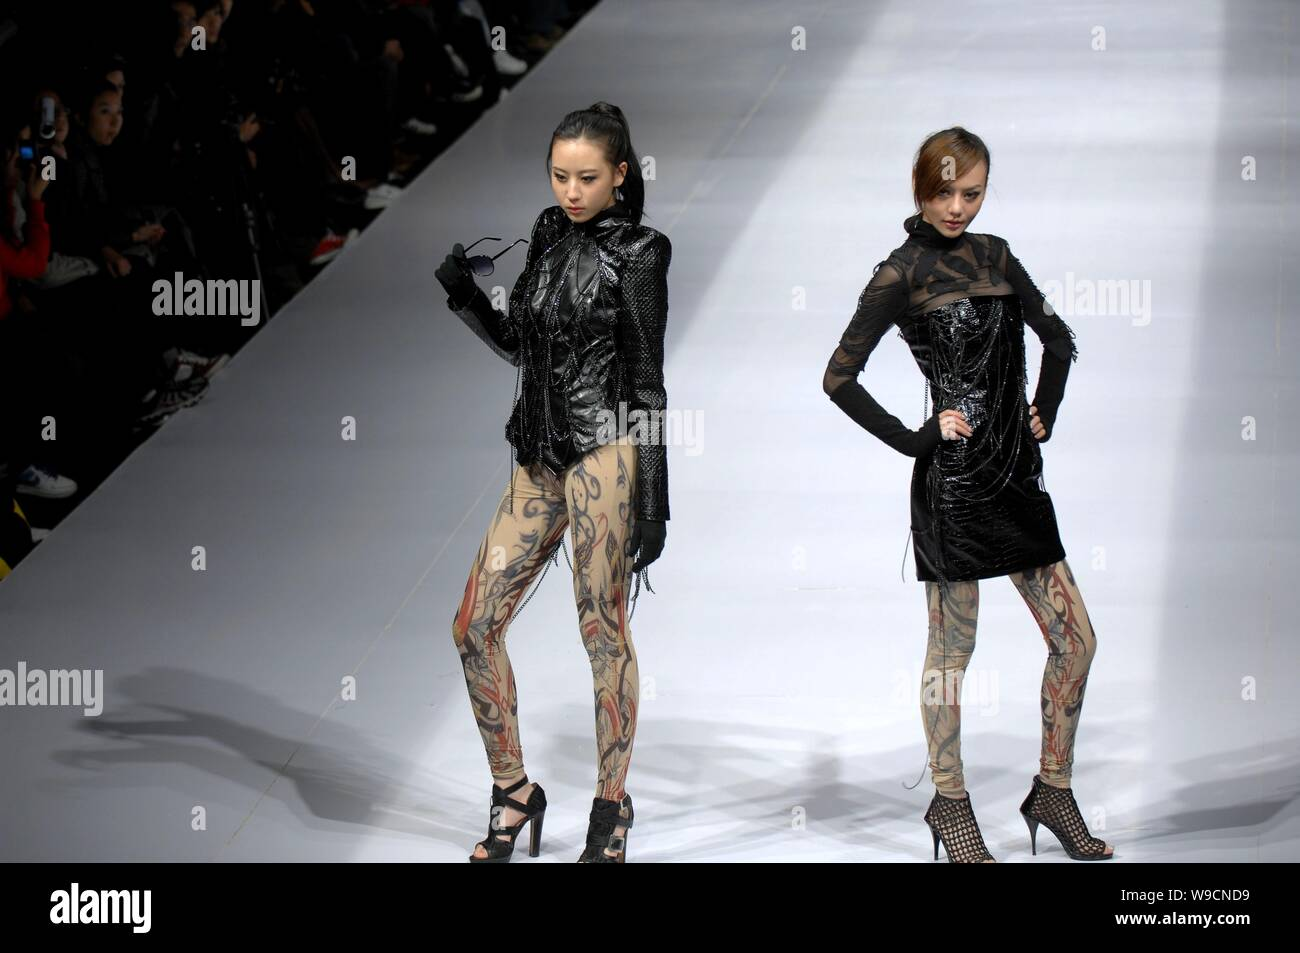 Chinese Models Parade At Raffles Design Institute Graduates Show During The China Fashion Week 2009 In Beijing China November 9 2009 Stock Photo Alamy